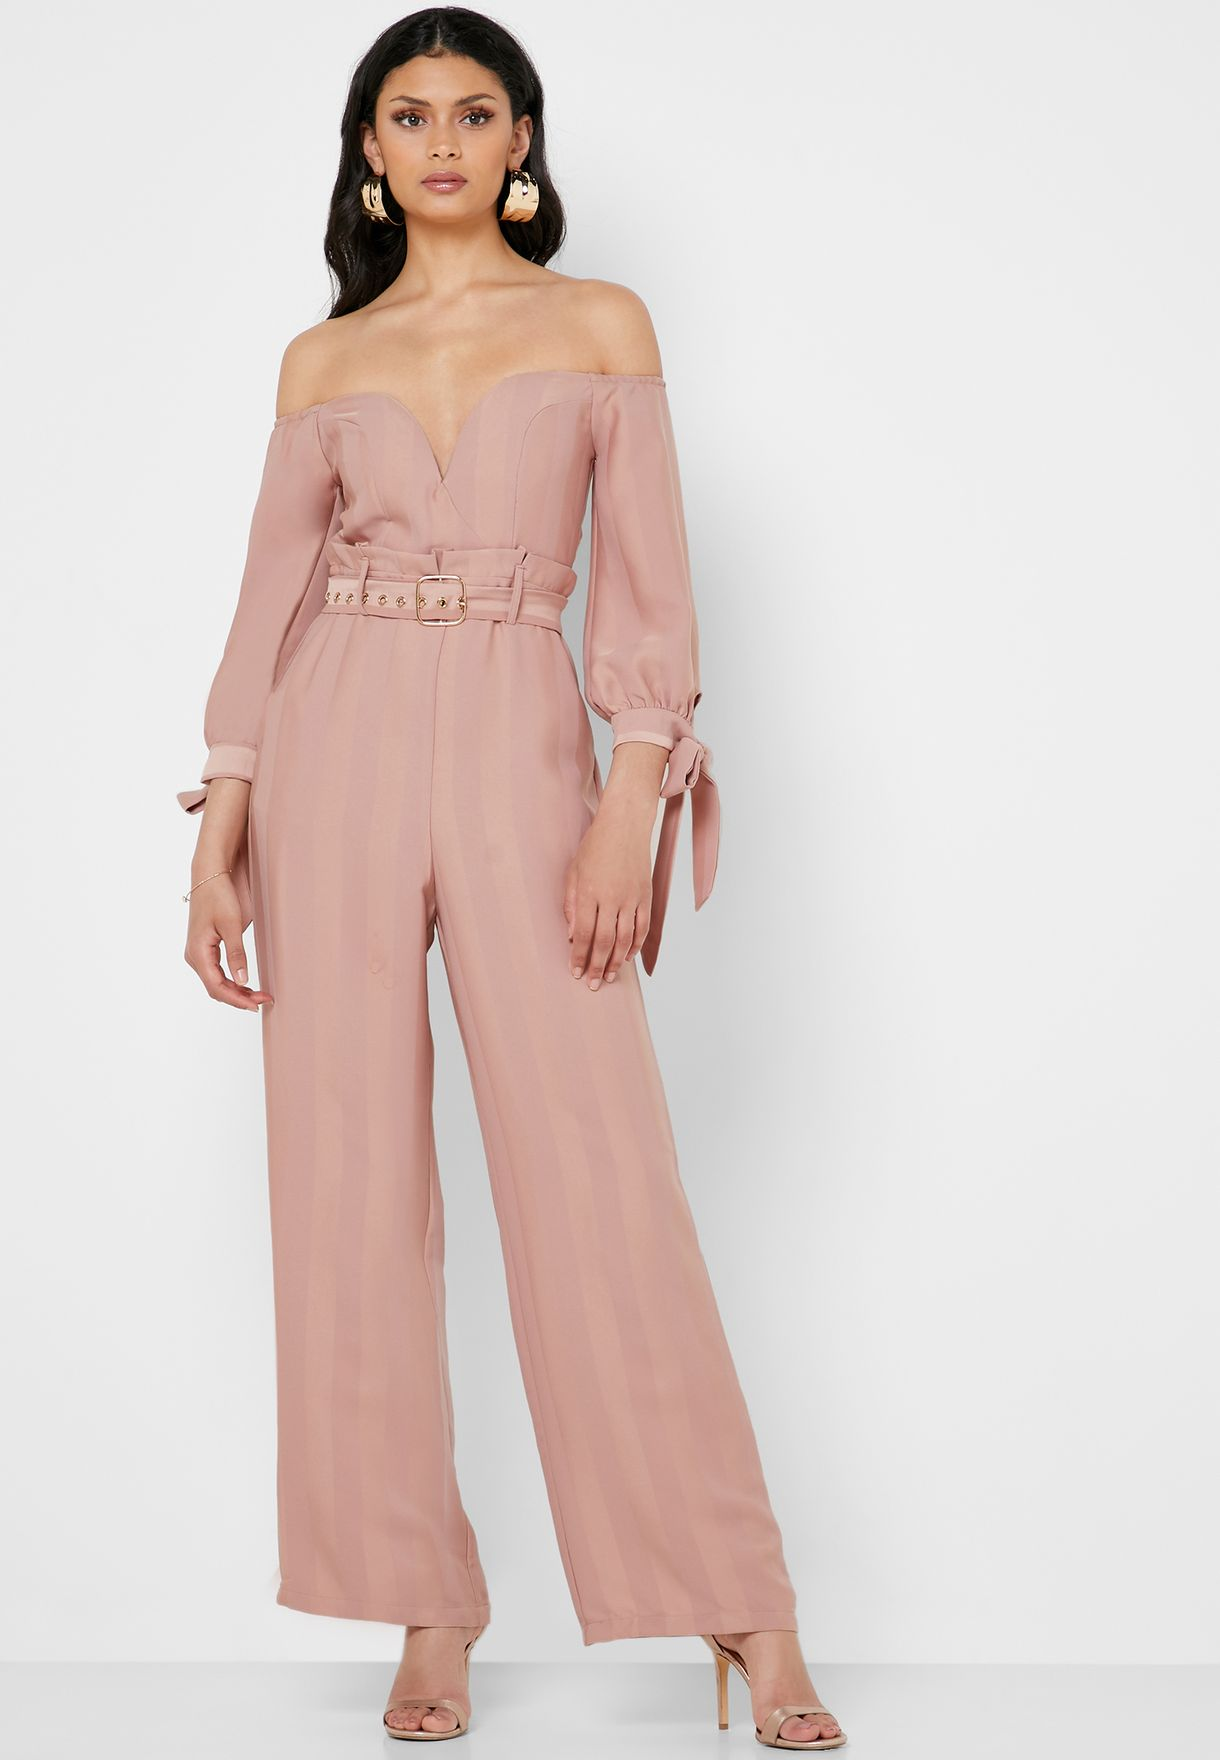 53fb5f495a0 Shop The Clothing Company pink Belted Bardot Plunge Jumpsuit LJM3007 ...